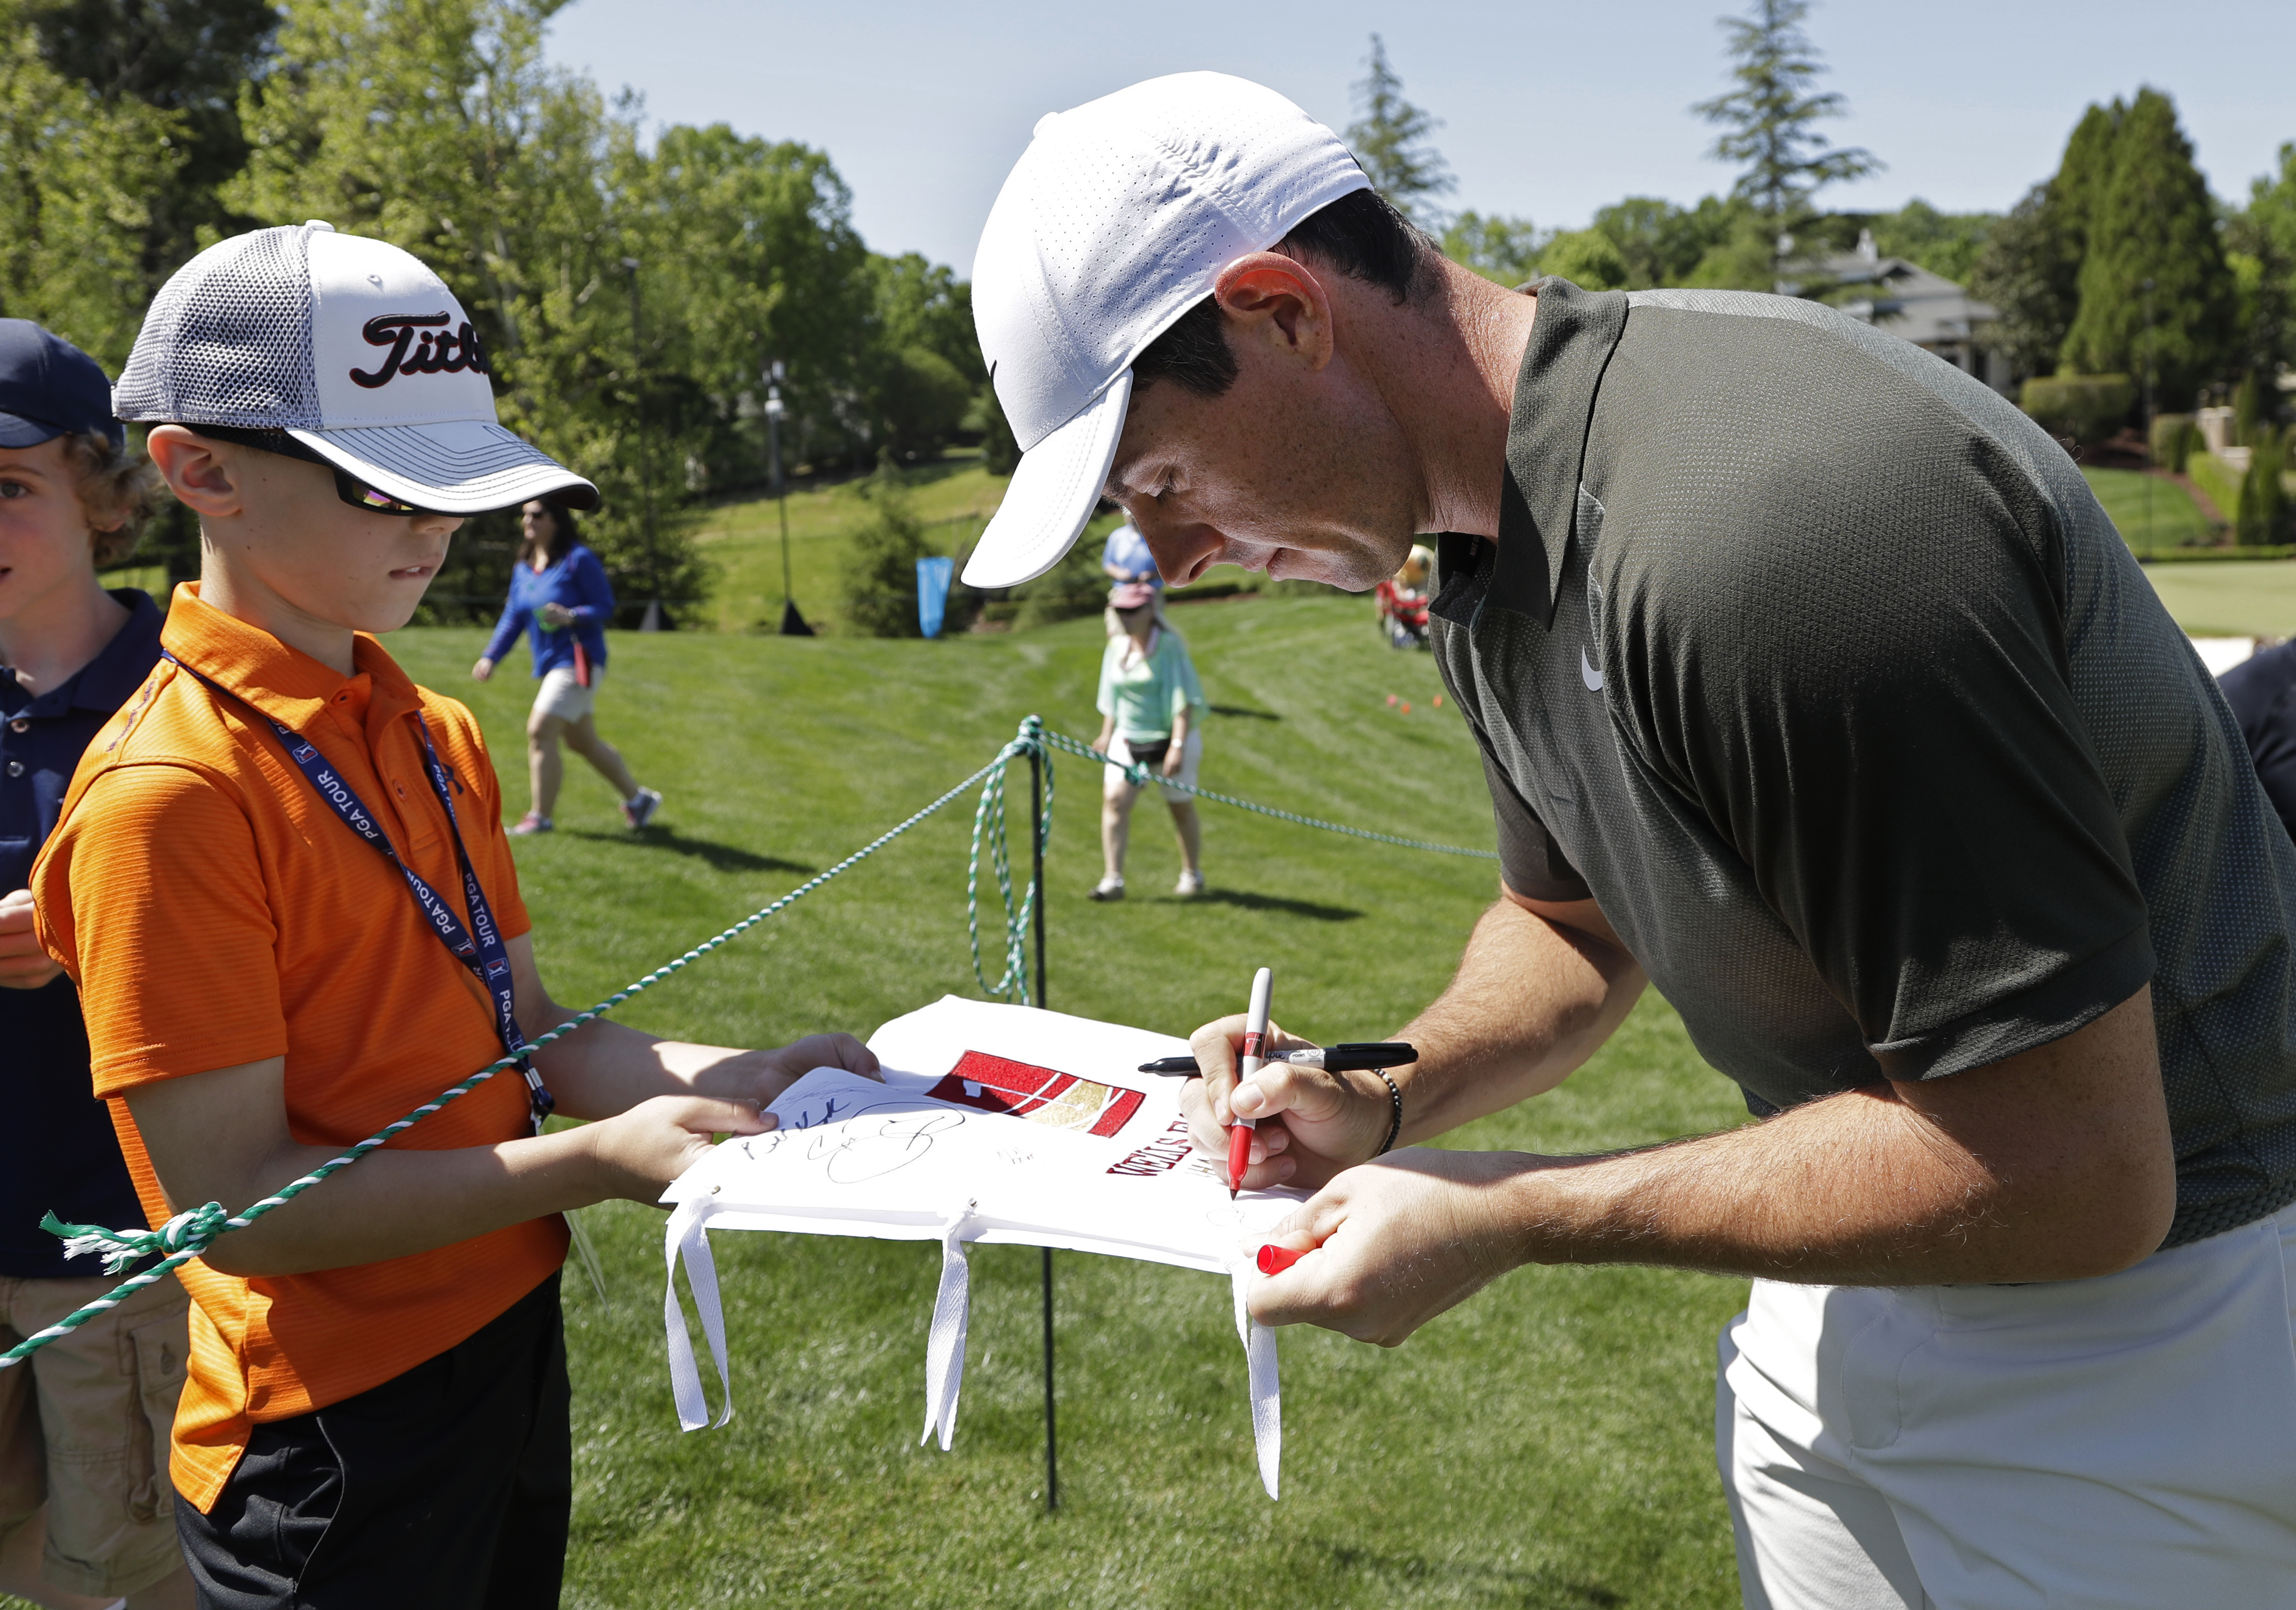 <div class='meta'><div class='origin-logo' data-origin='AP'></div><span class='caption-text' data-credit='Chuck Burton'>Rory McIlroy, of Northern Ireland, signs an autograph for a fan on the seventh hole.</span></div>